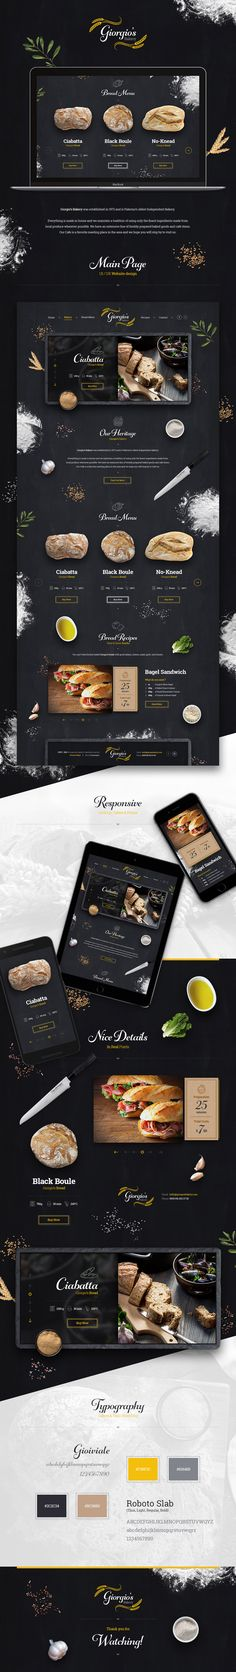 Giorgiosbakery behance Cohesive color theme that enhances the main focus. The site is eye catching and easy to look at without being loaded with photos or decoration